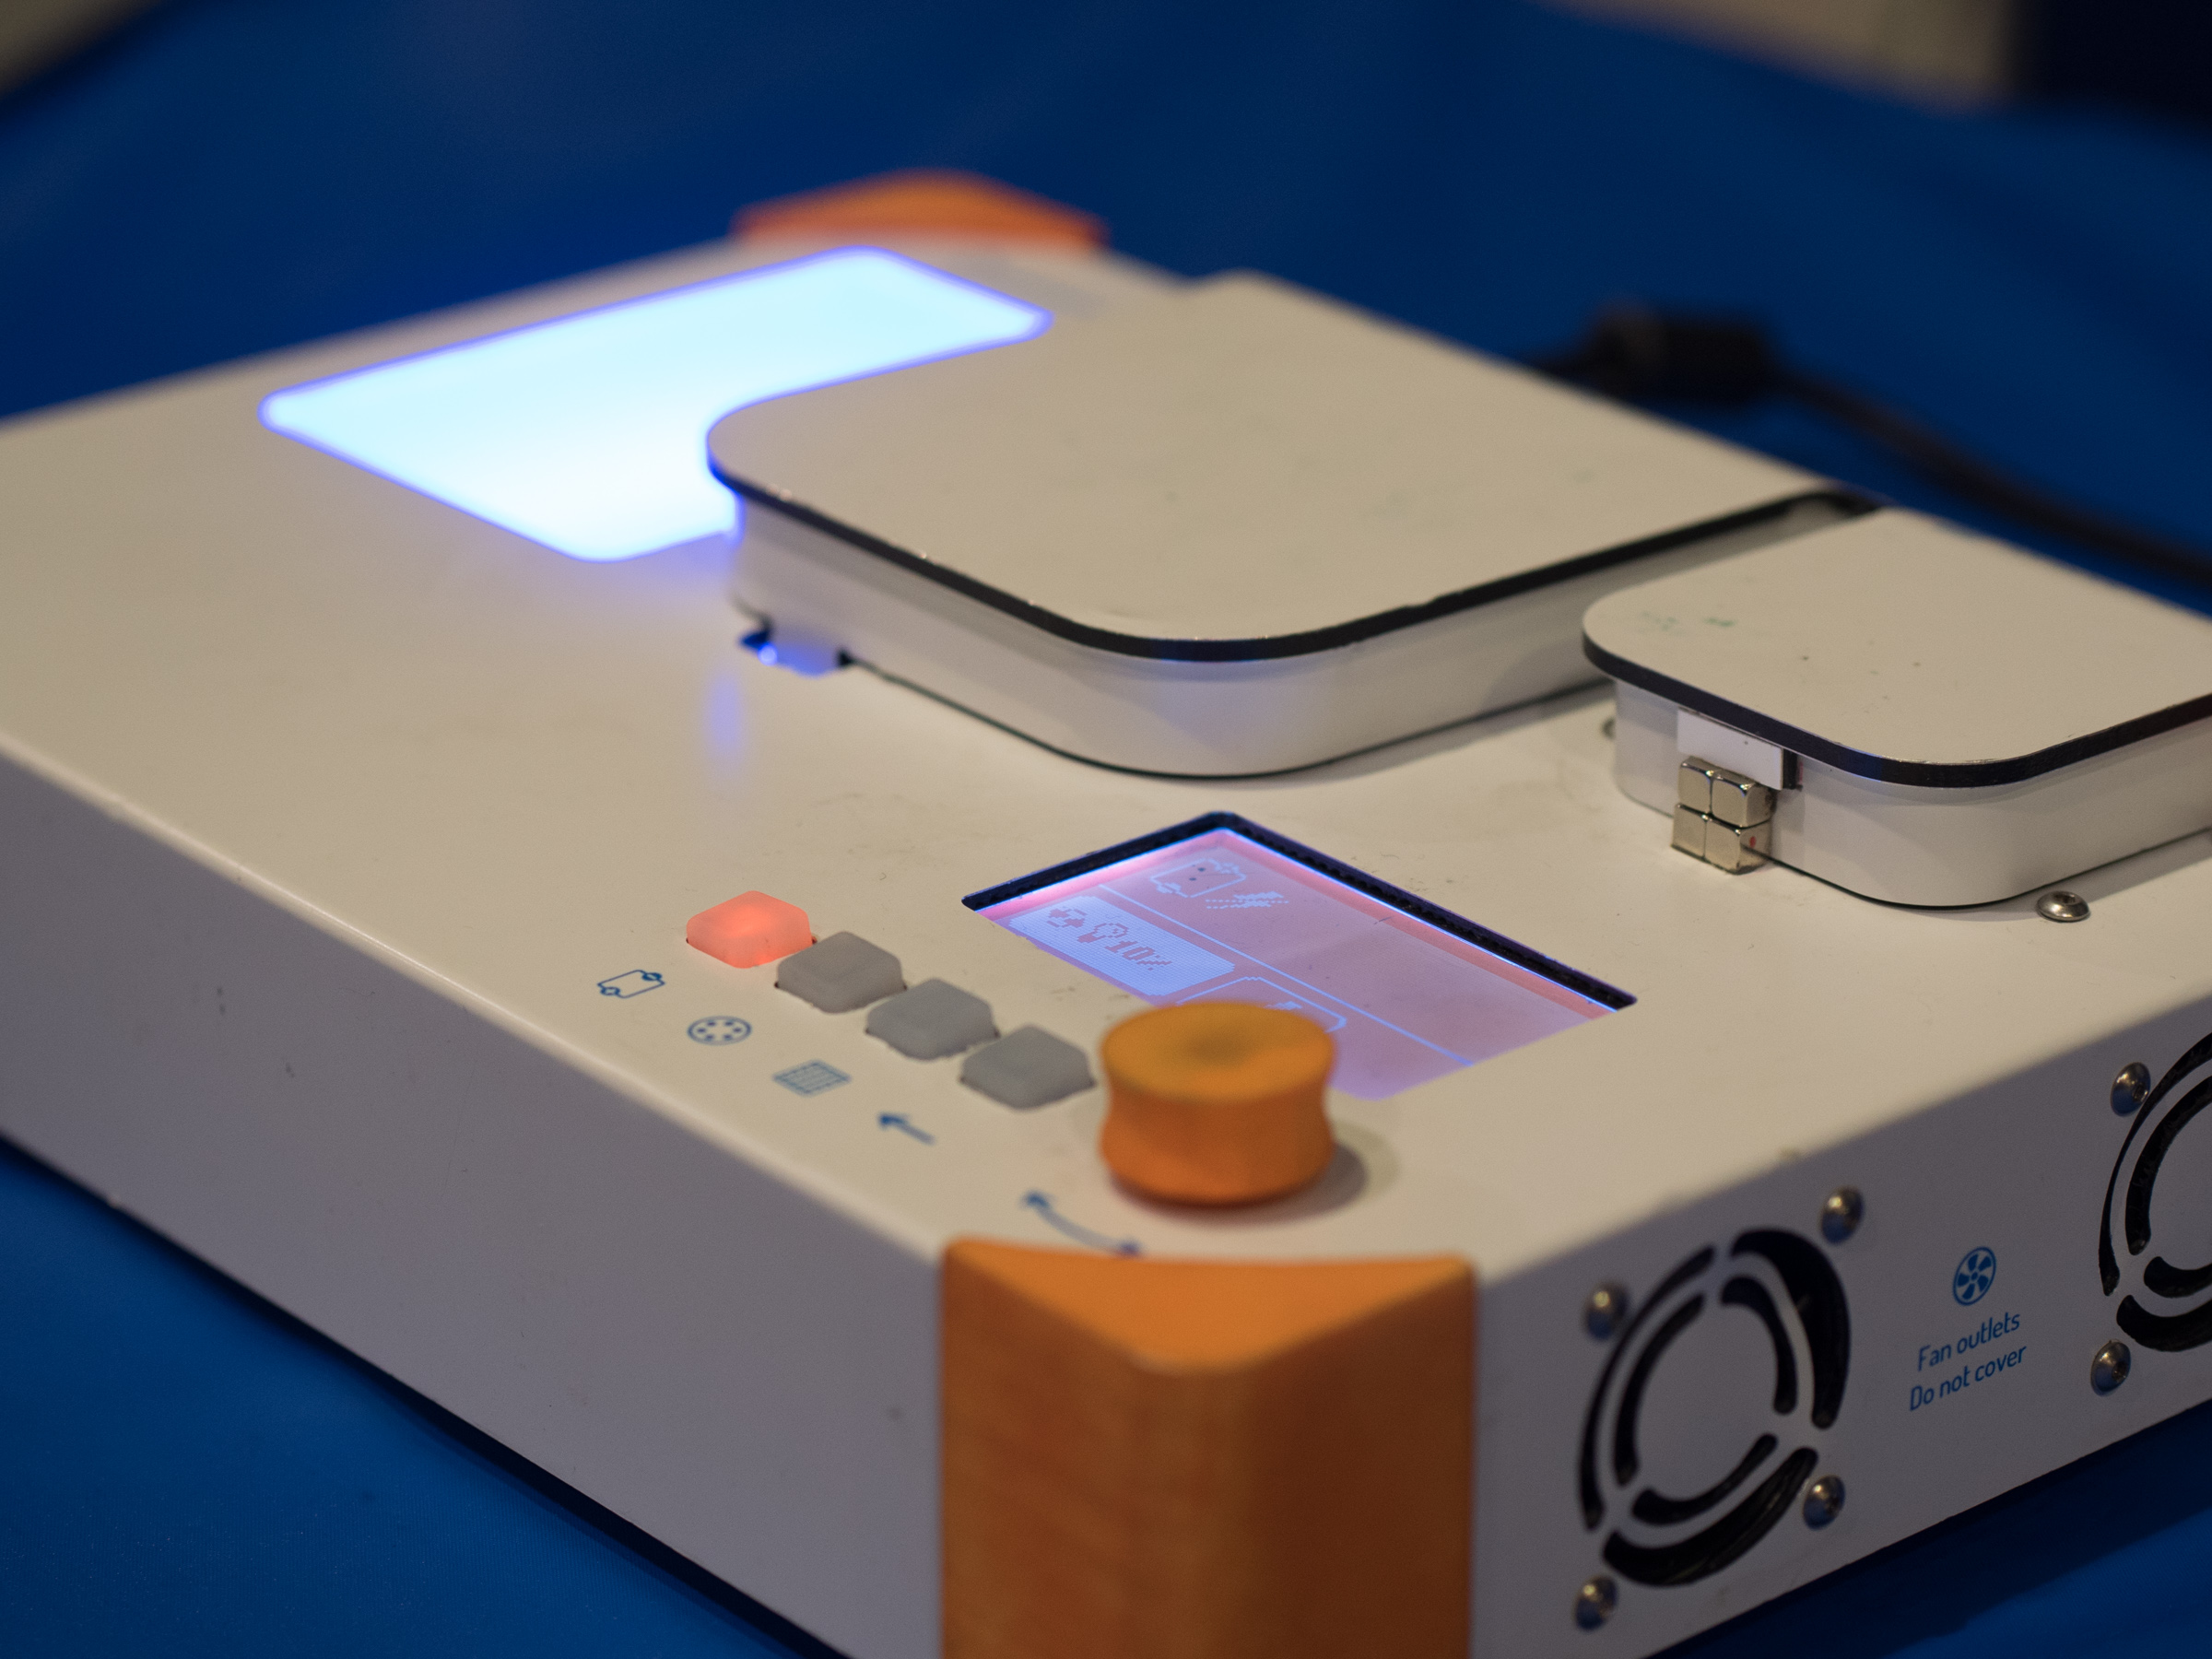 Bento Lab lets anyone extract, target and copy specific pieces of DNA from biological samples